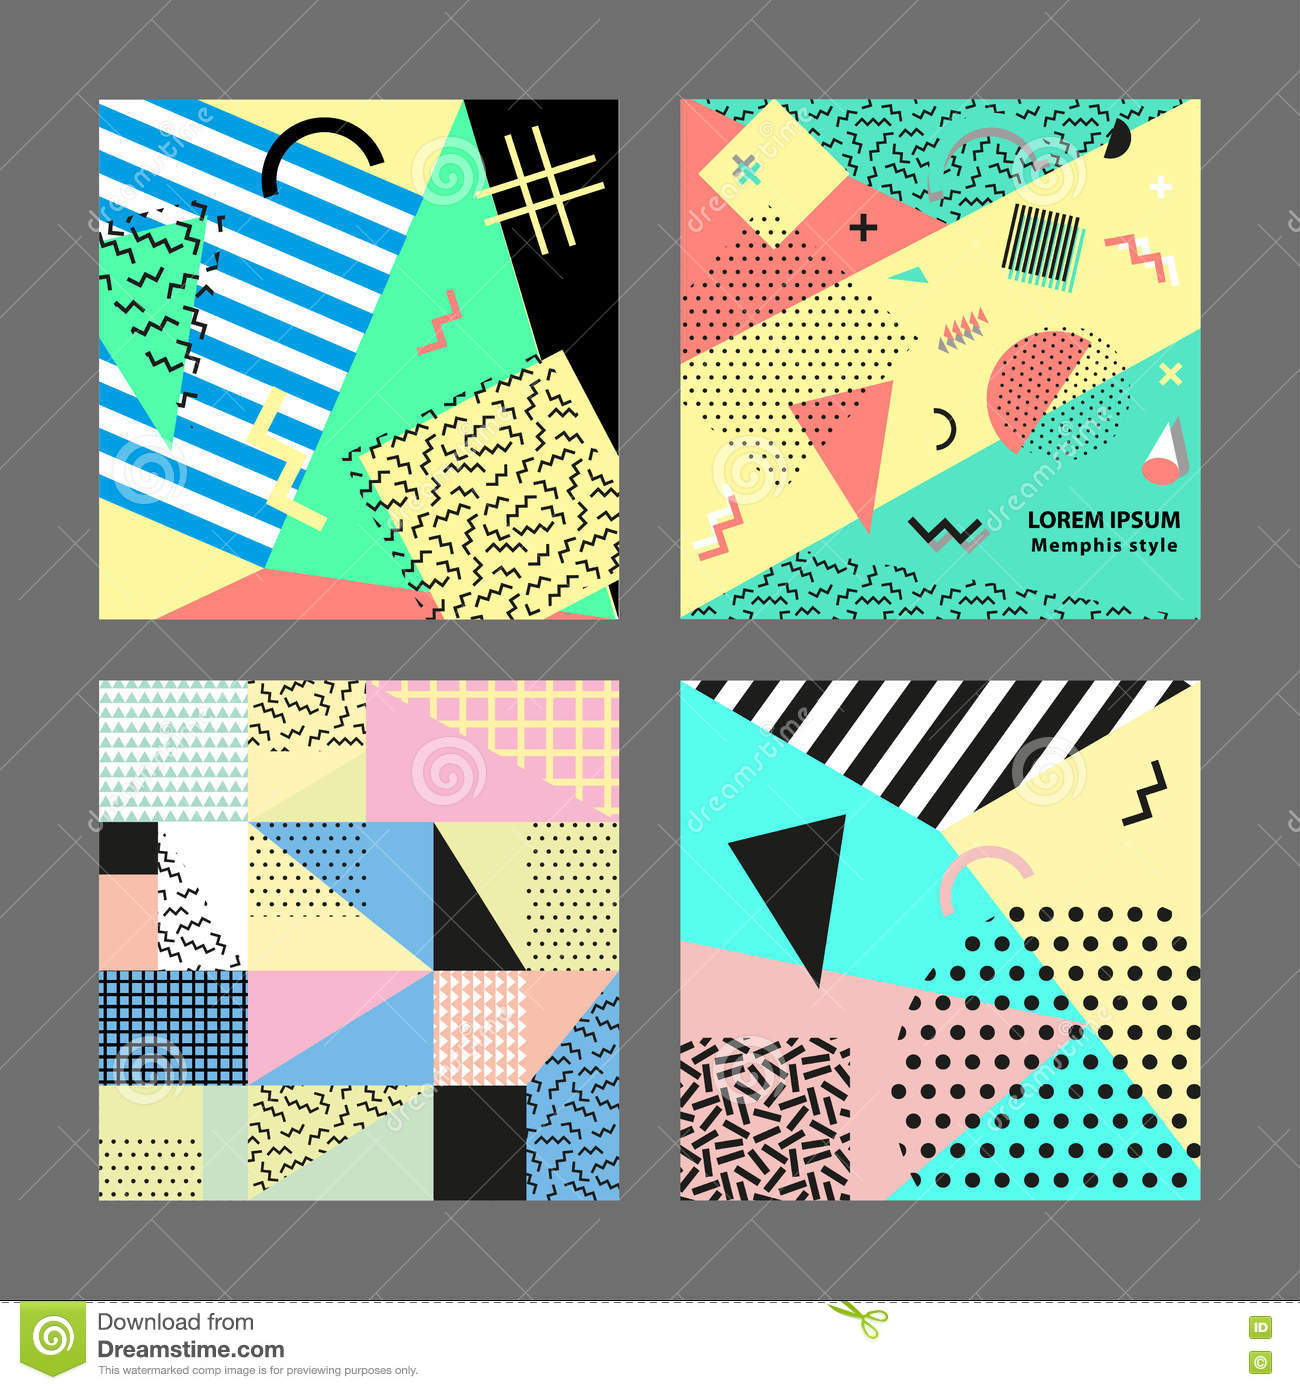 90s poster design - Retro Vintage 80s Or 90s Fashion Style Memphis Cards Big Set Trendy Geometric